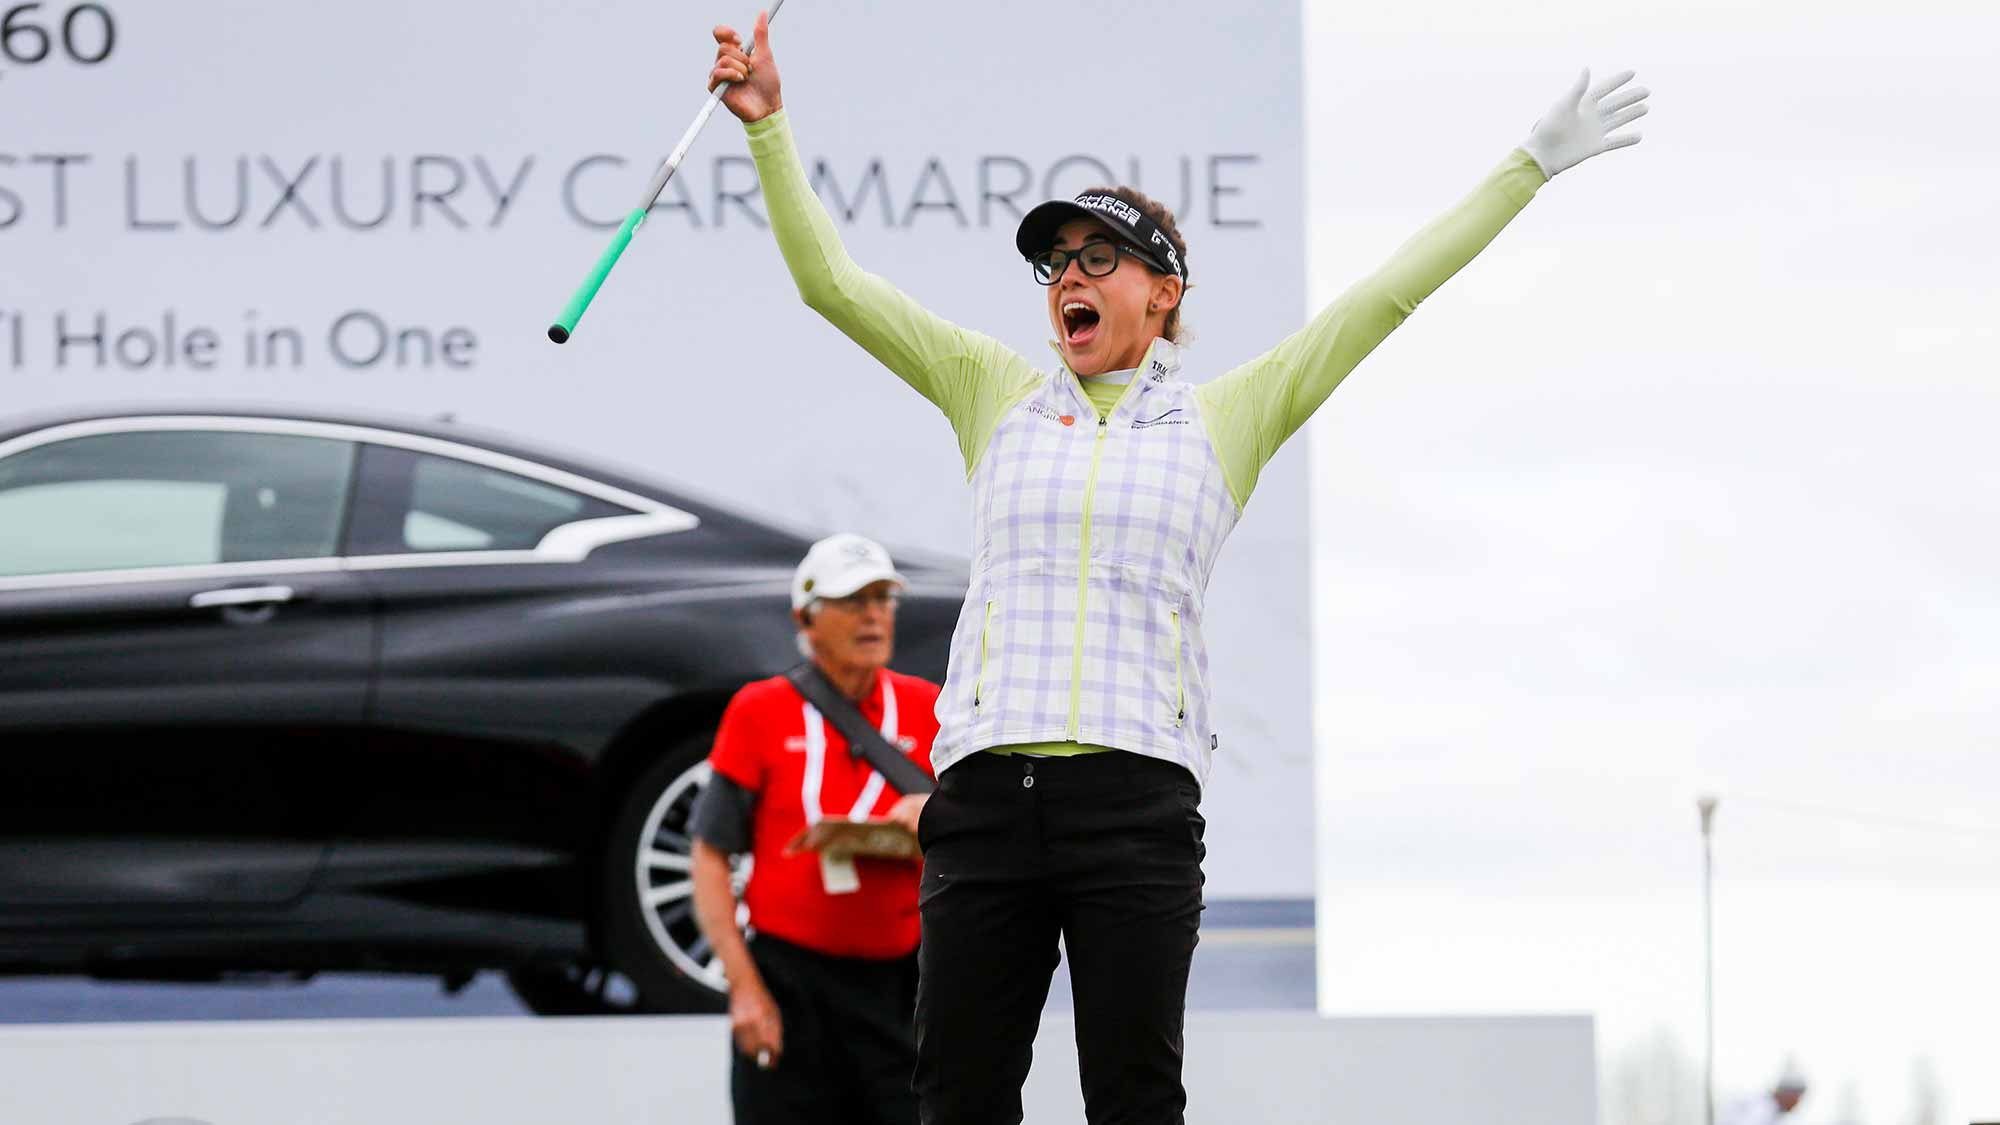 Belen Mozo Celebrates Hole In One During Second Round of the 2017 MCKAYSON New Zealand Women's Open